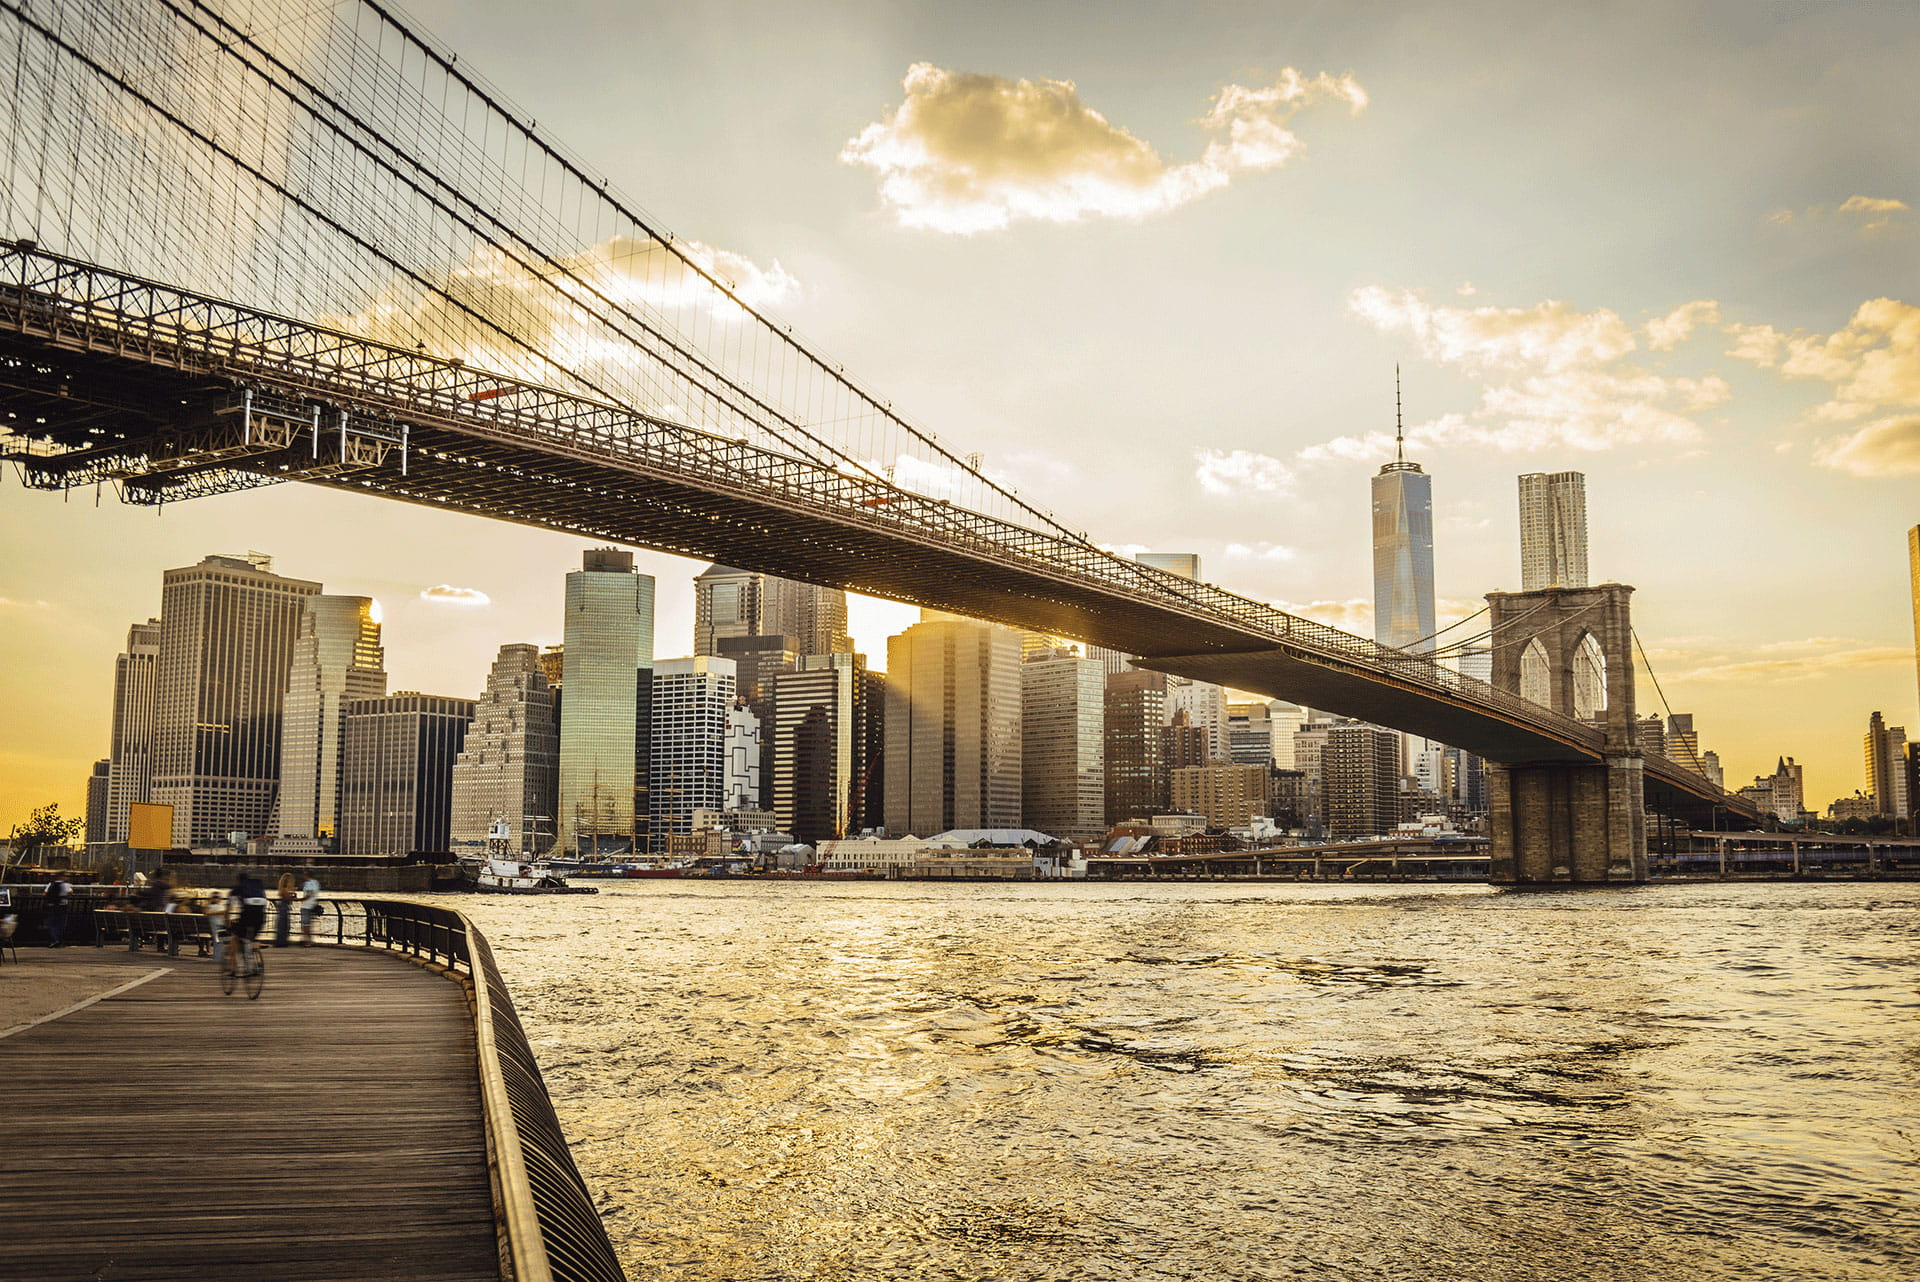 Brooklyn Bridge, New York at Sunrise